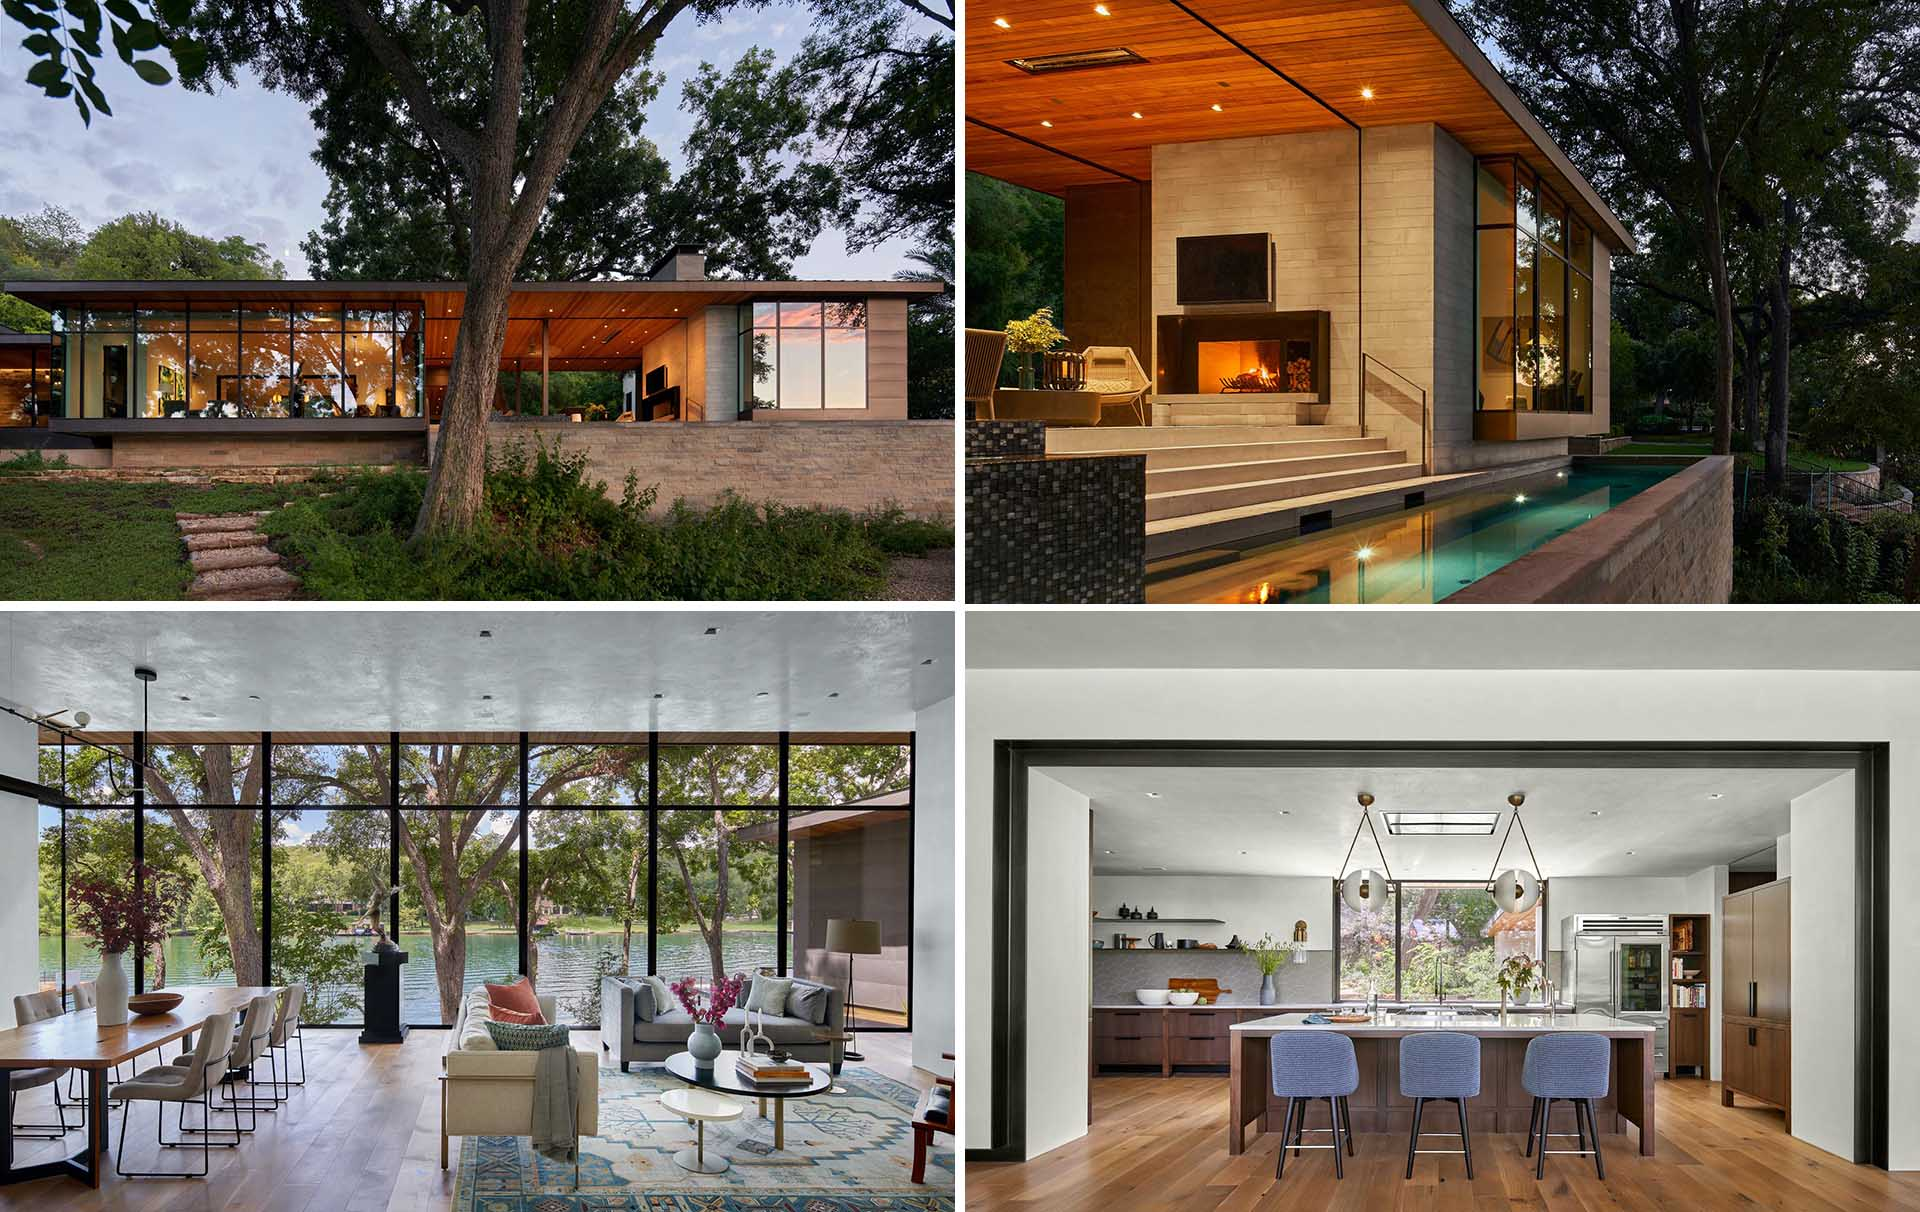 A modern lakeside house with walls of windows and a covered outdoor entertaining space.